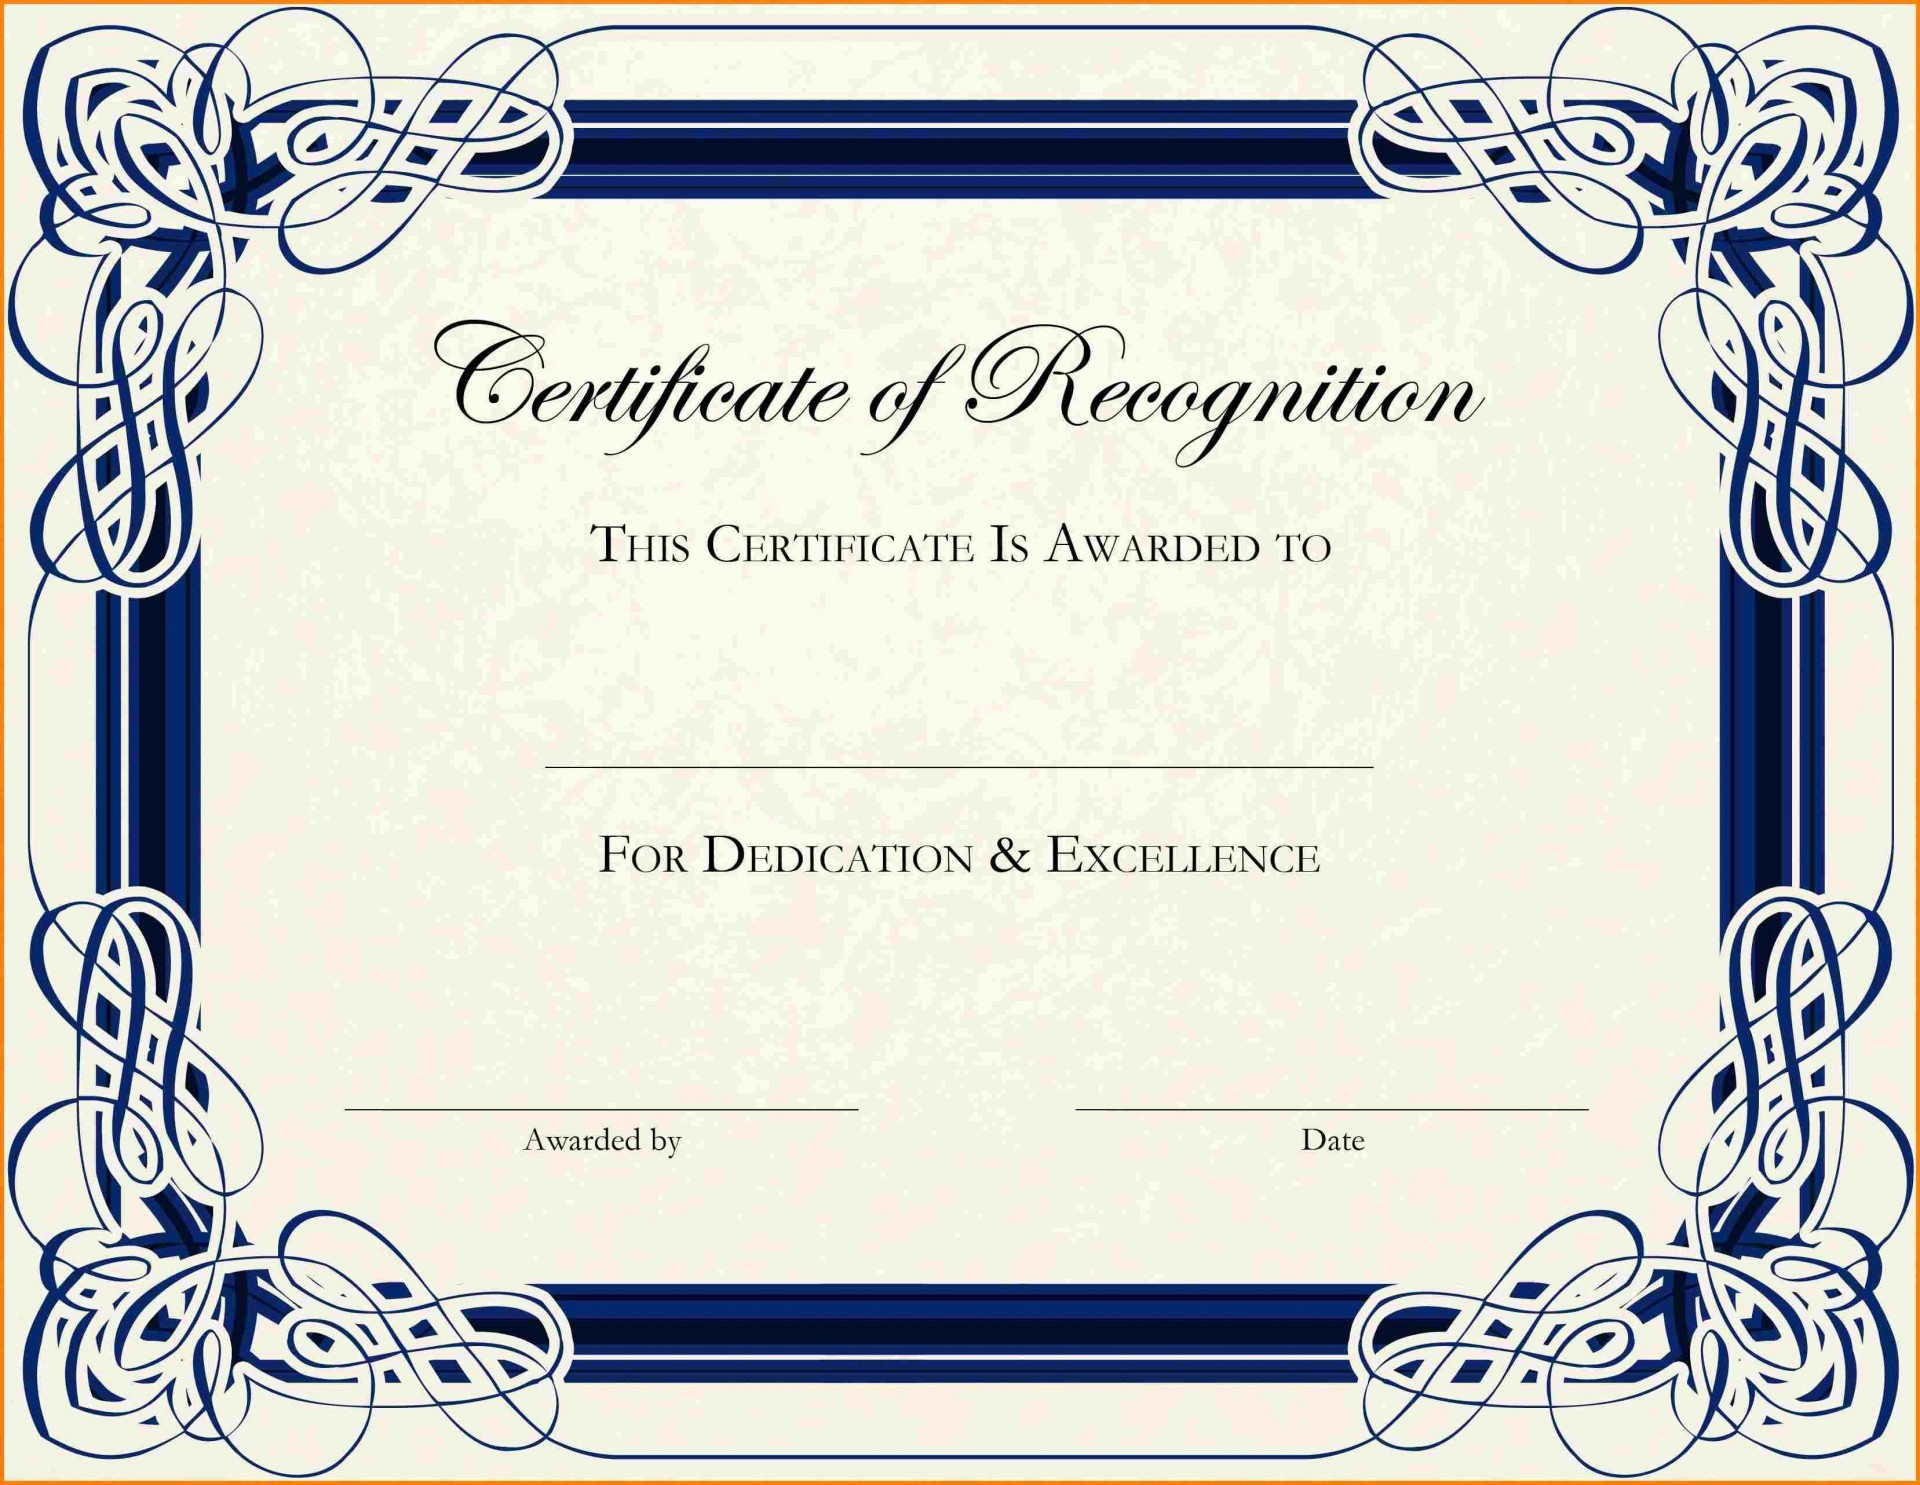 003 Phenomenal Free Printable Certificate Template Photo  Templates Blank Downloadable Participation1920